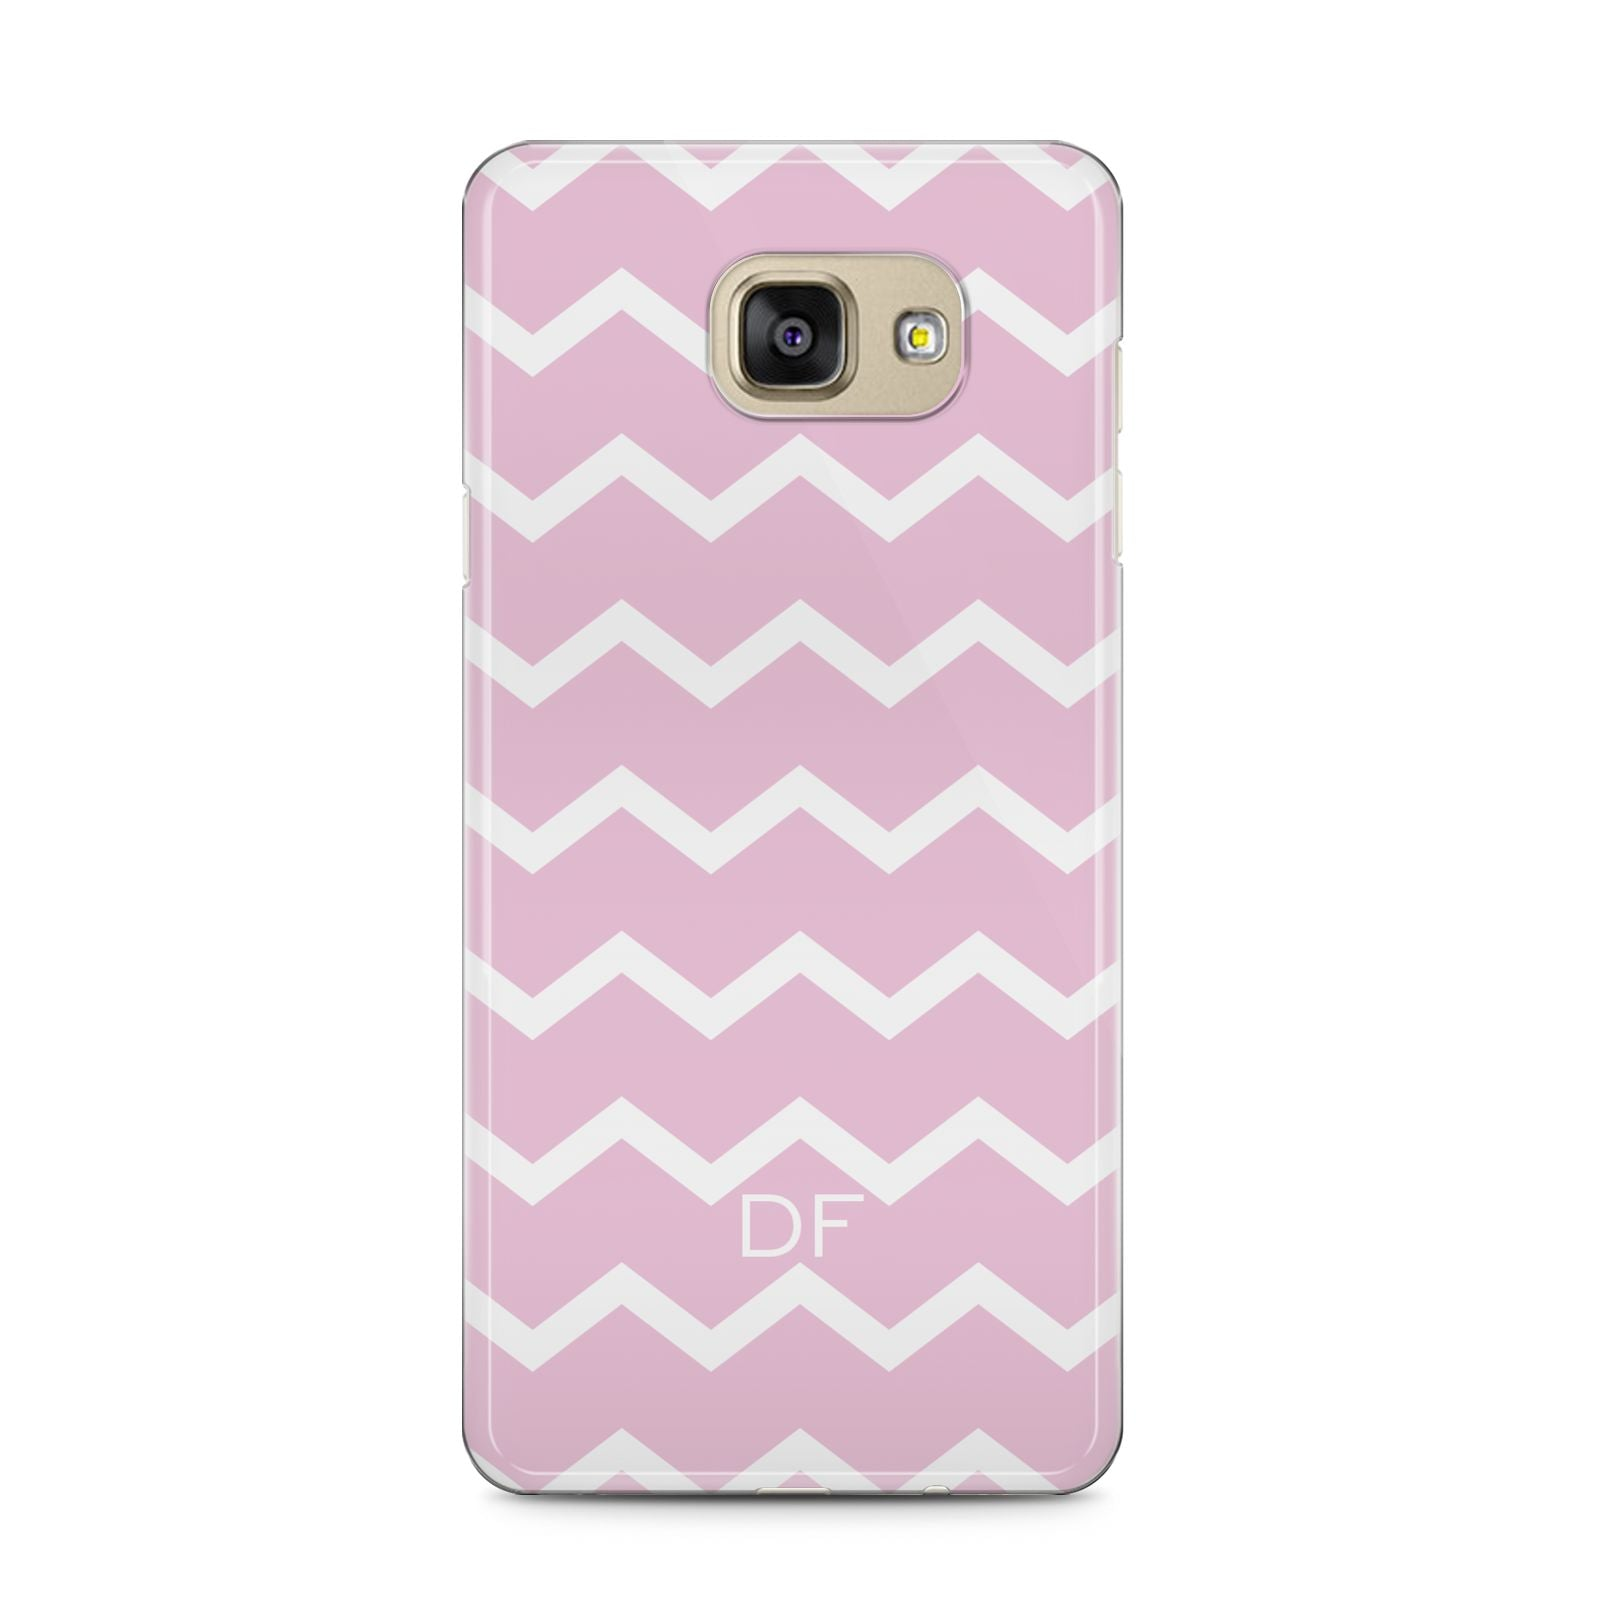 Personalised Chevron Pink Samsung Galaxy A5 2016 Case on gold phone